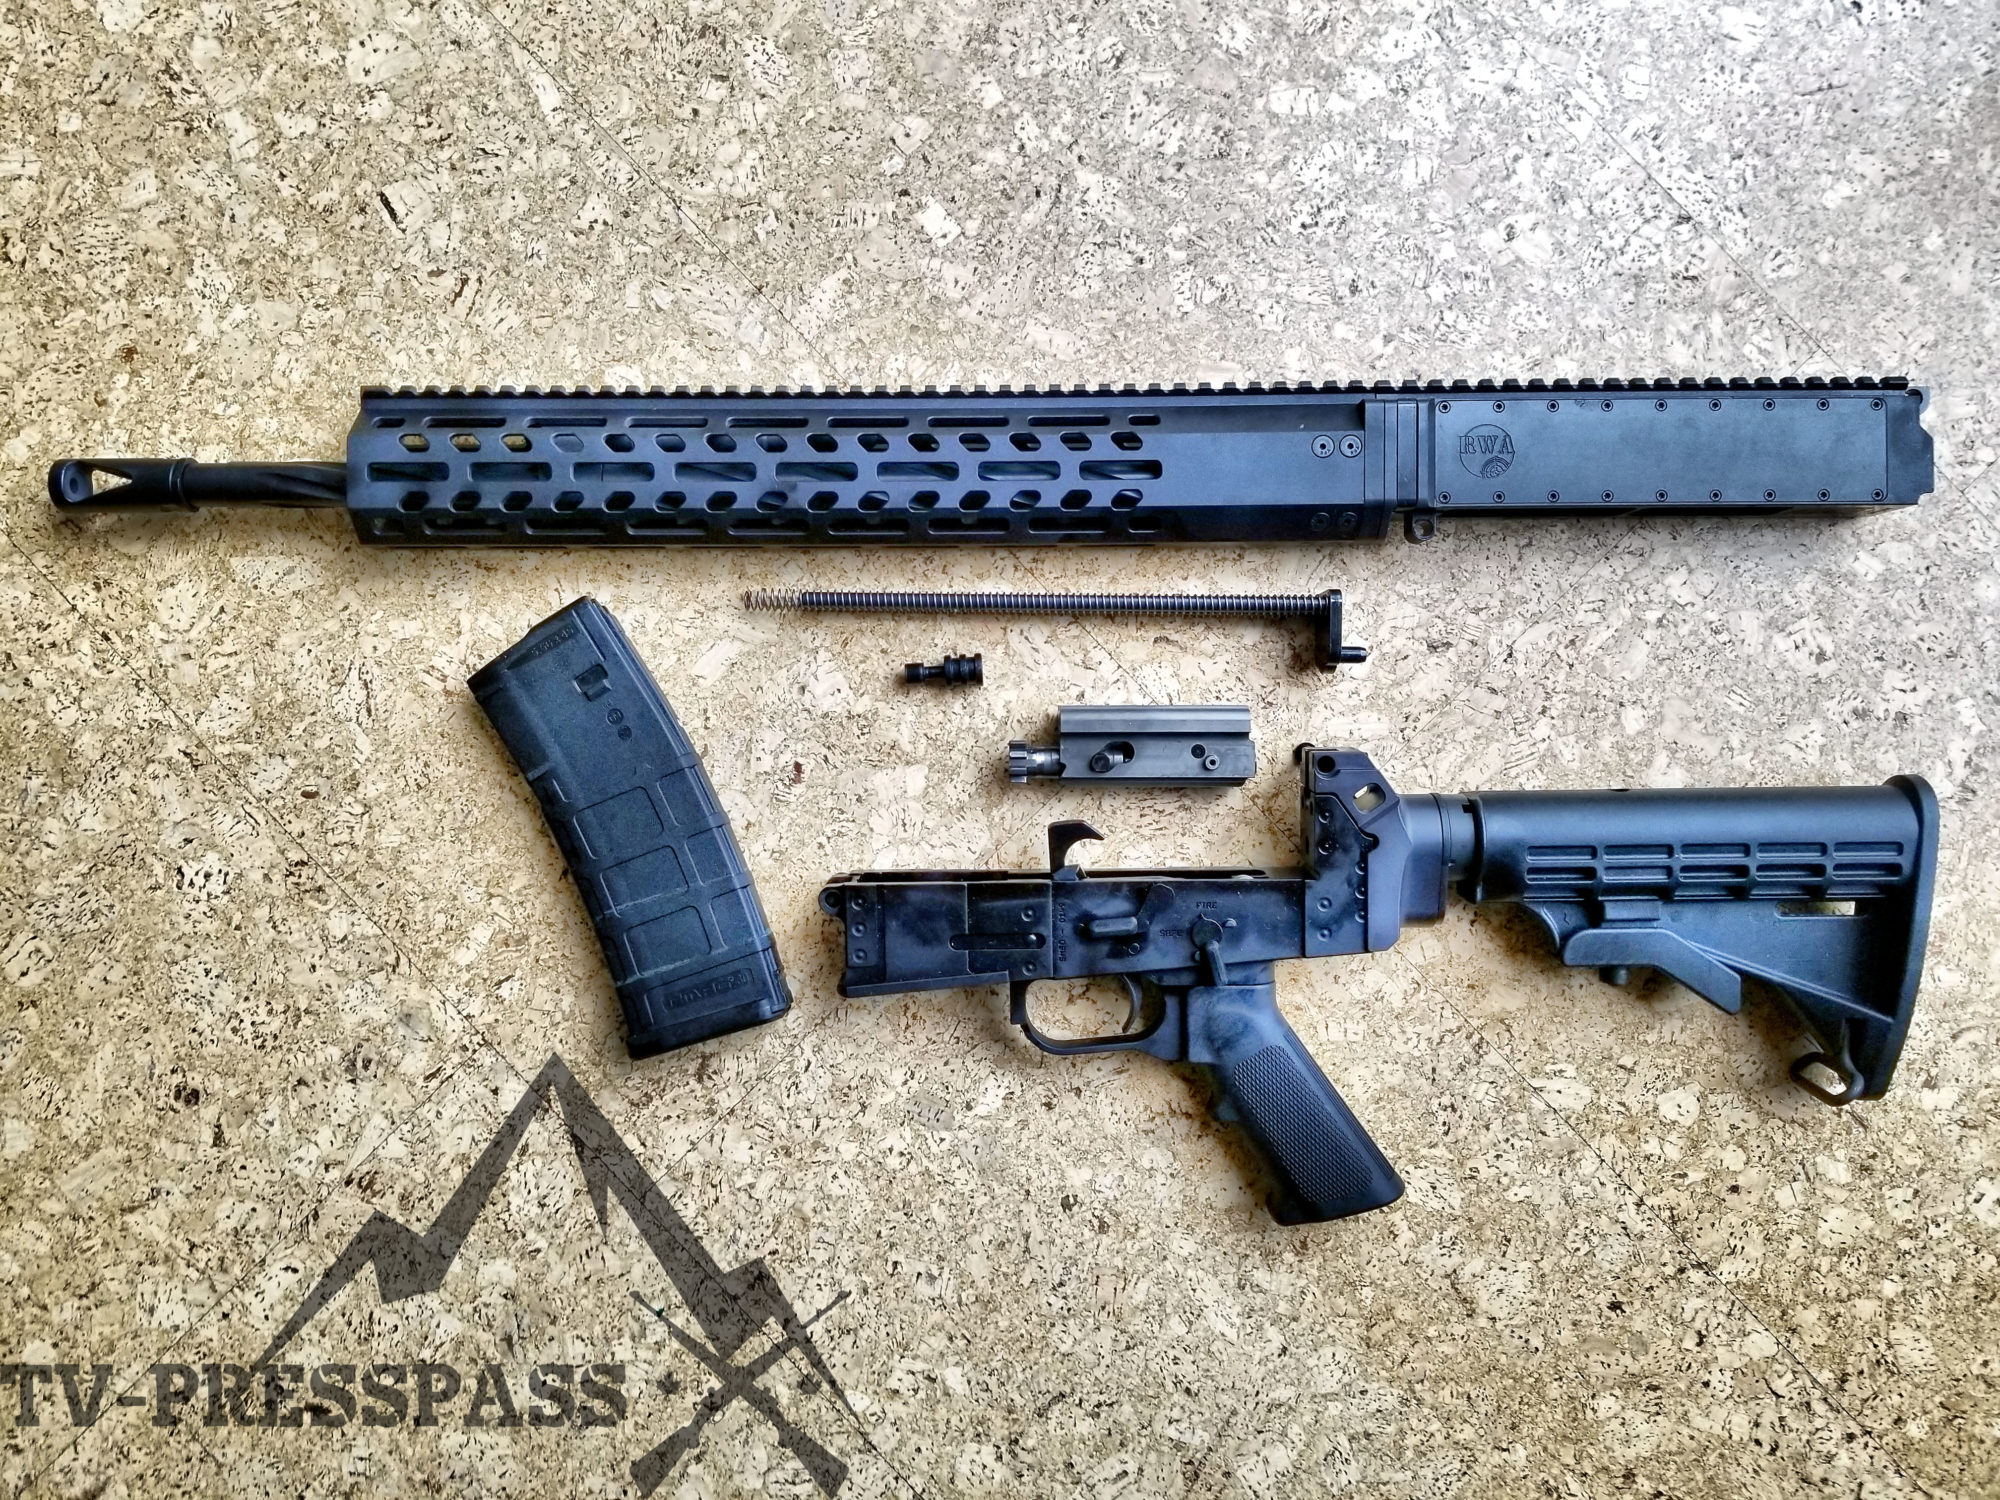 REVIEW – Range Warrior Accessories AR180B Rifle – TV-PressPass